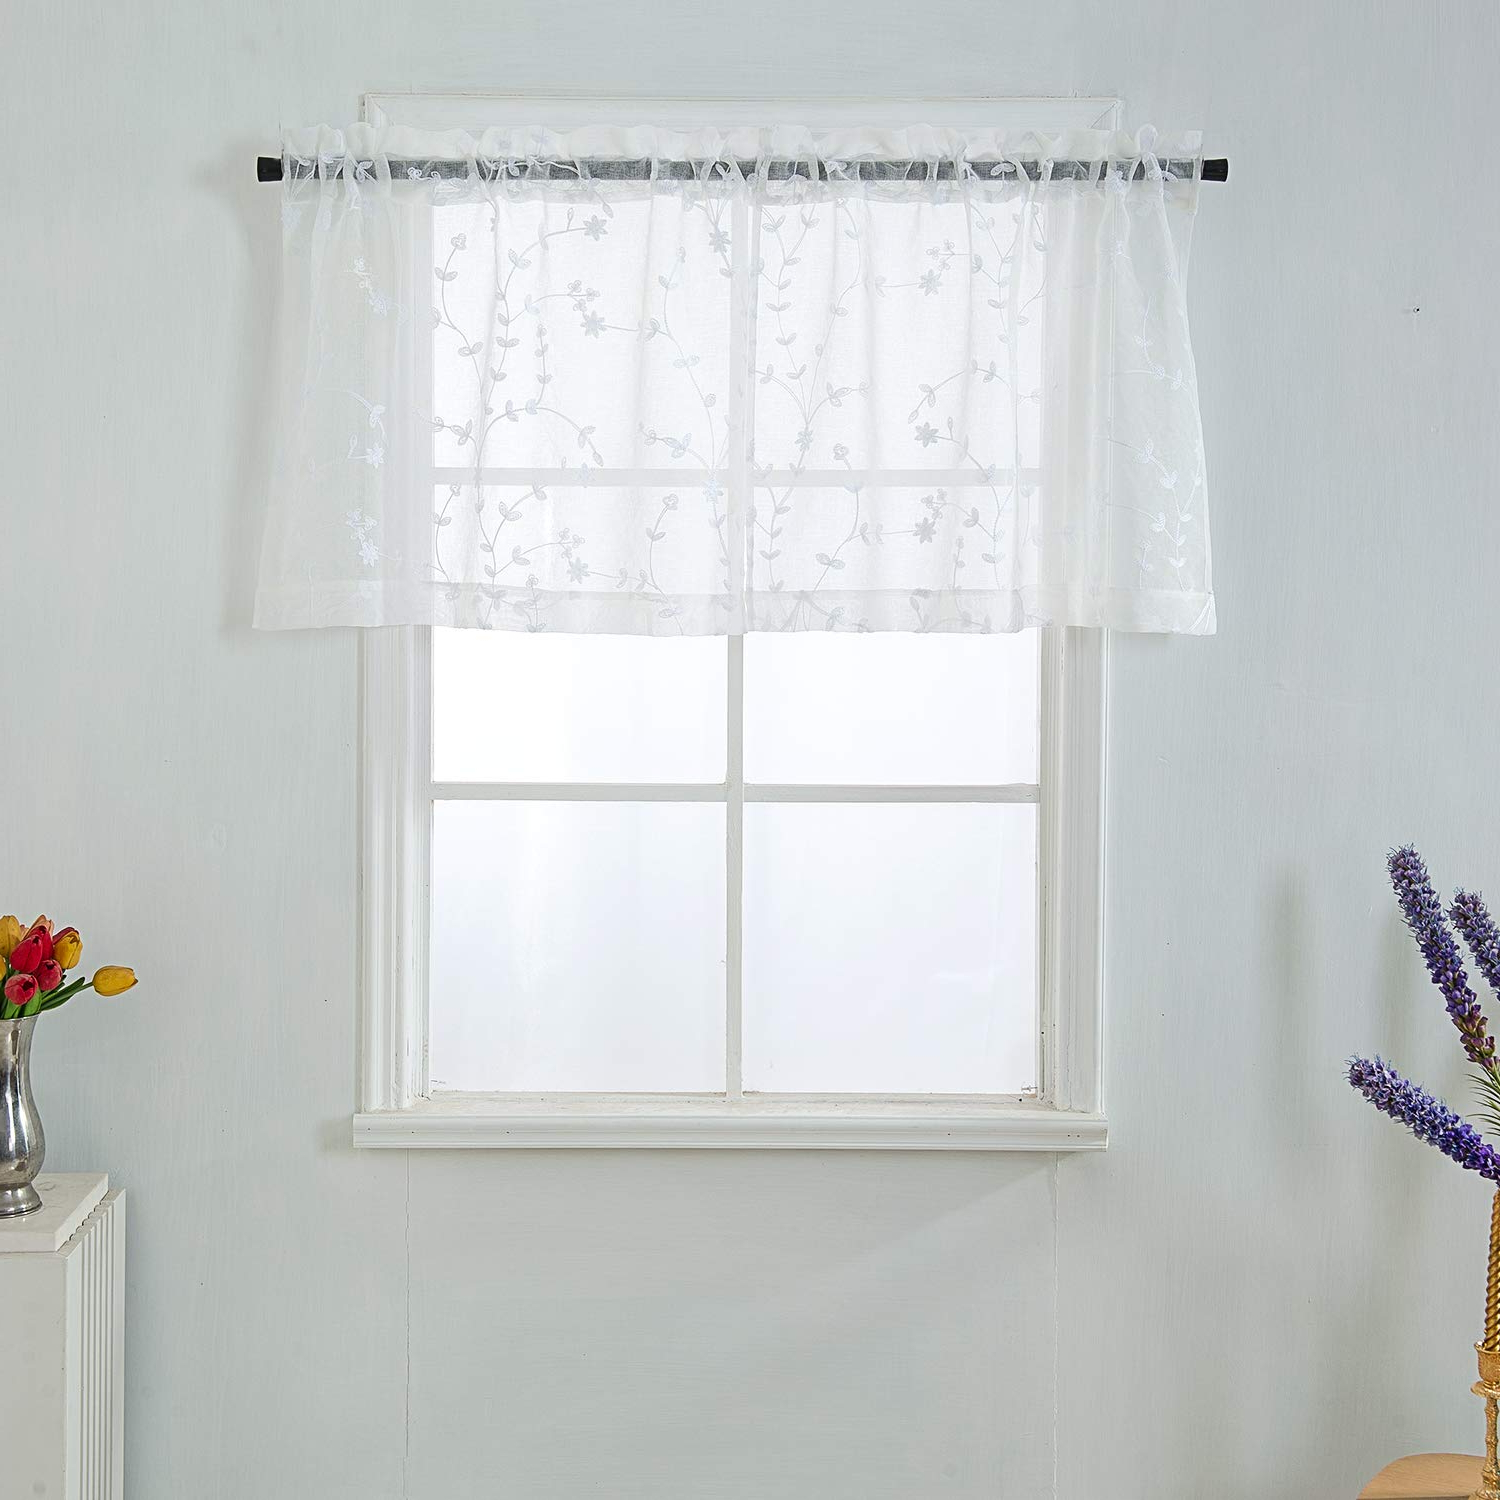 Sheer White Valance Floral Embroidered Window Valance Pair Rod Pocket Window Curtain Valance On Floral Pattern 34x24 Inch 2 Panels Set Intended For Famous Floral Pattern Window Valances (View 7 of 20)